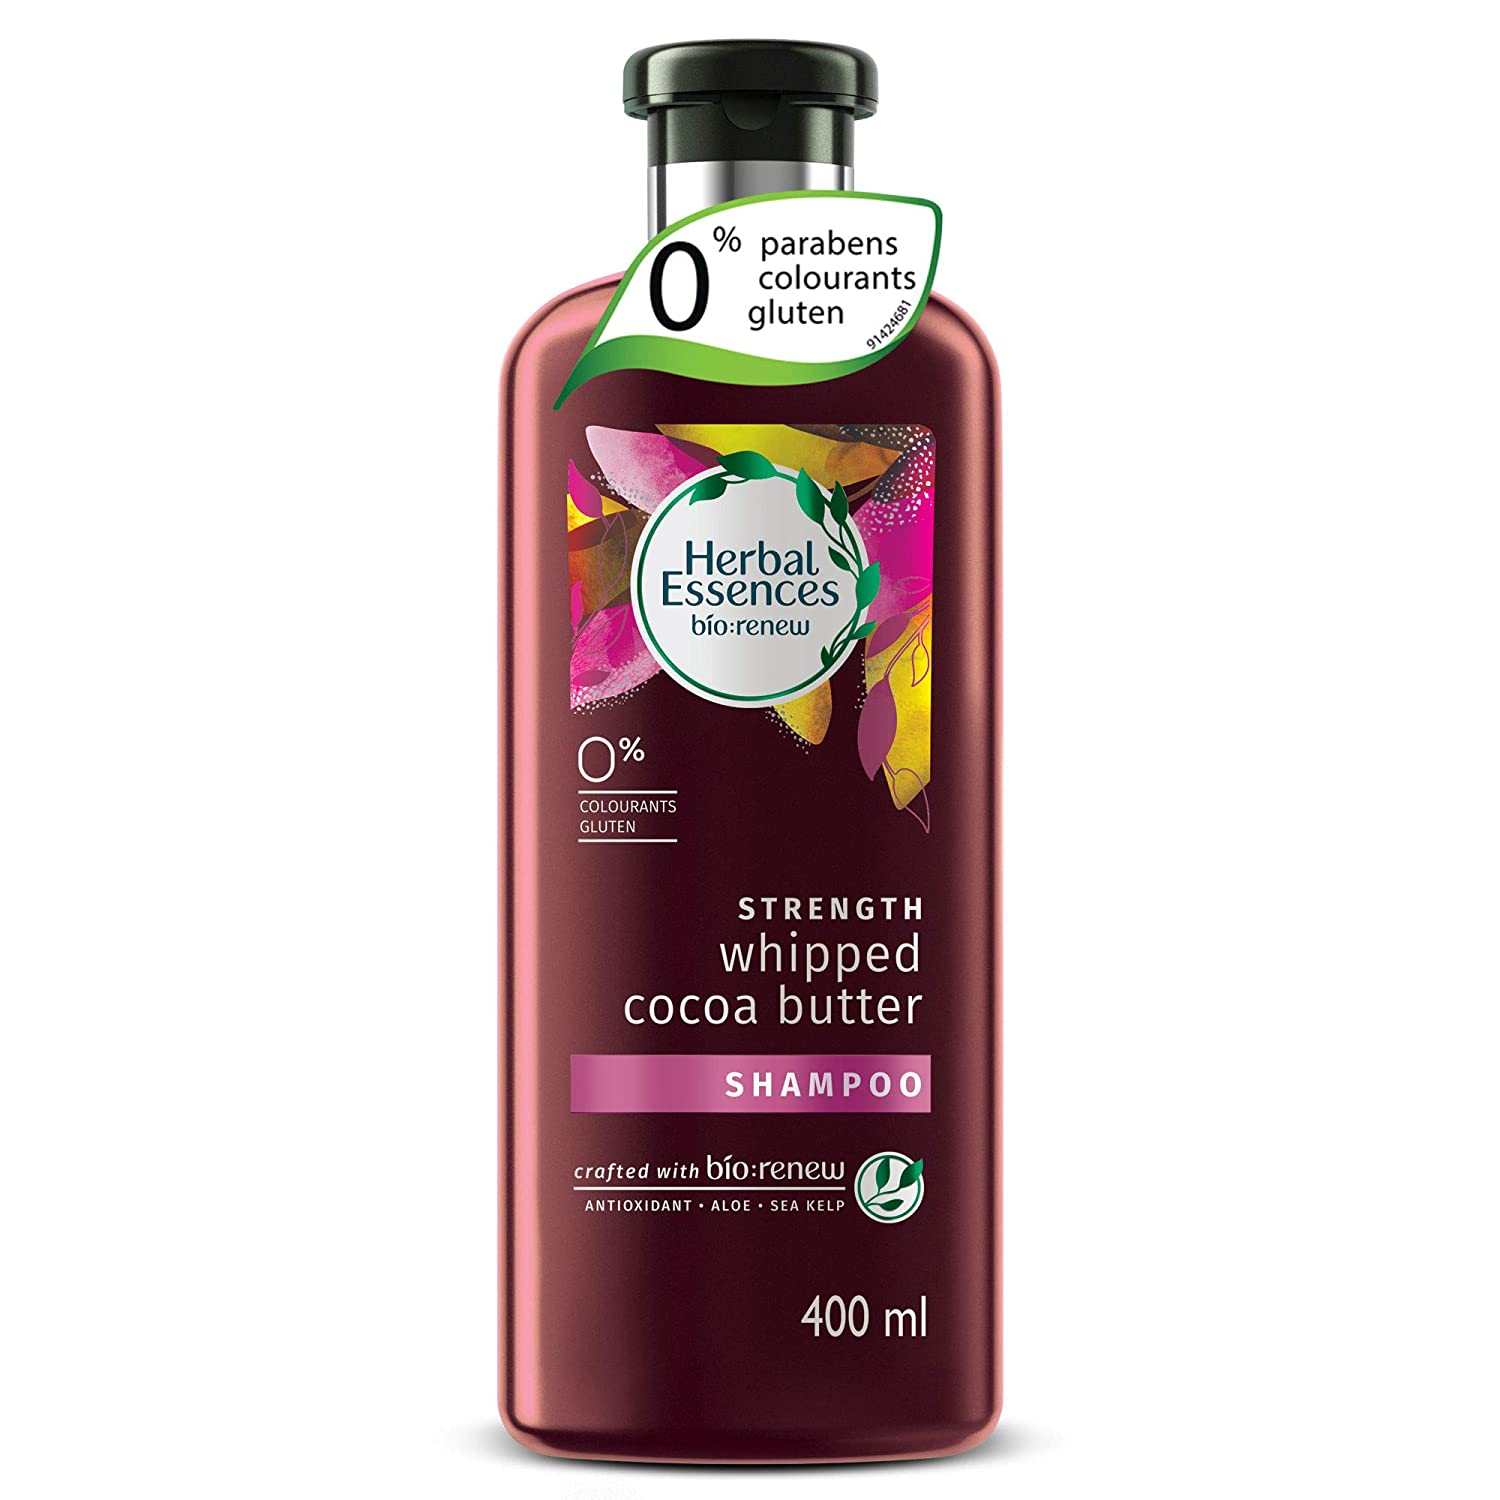 Herbal Essences bio:renew Whipped Cocoa Butter Shampoo, 400ml